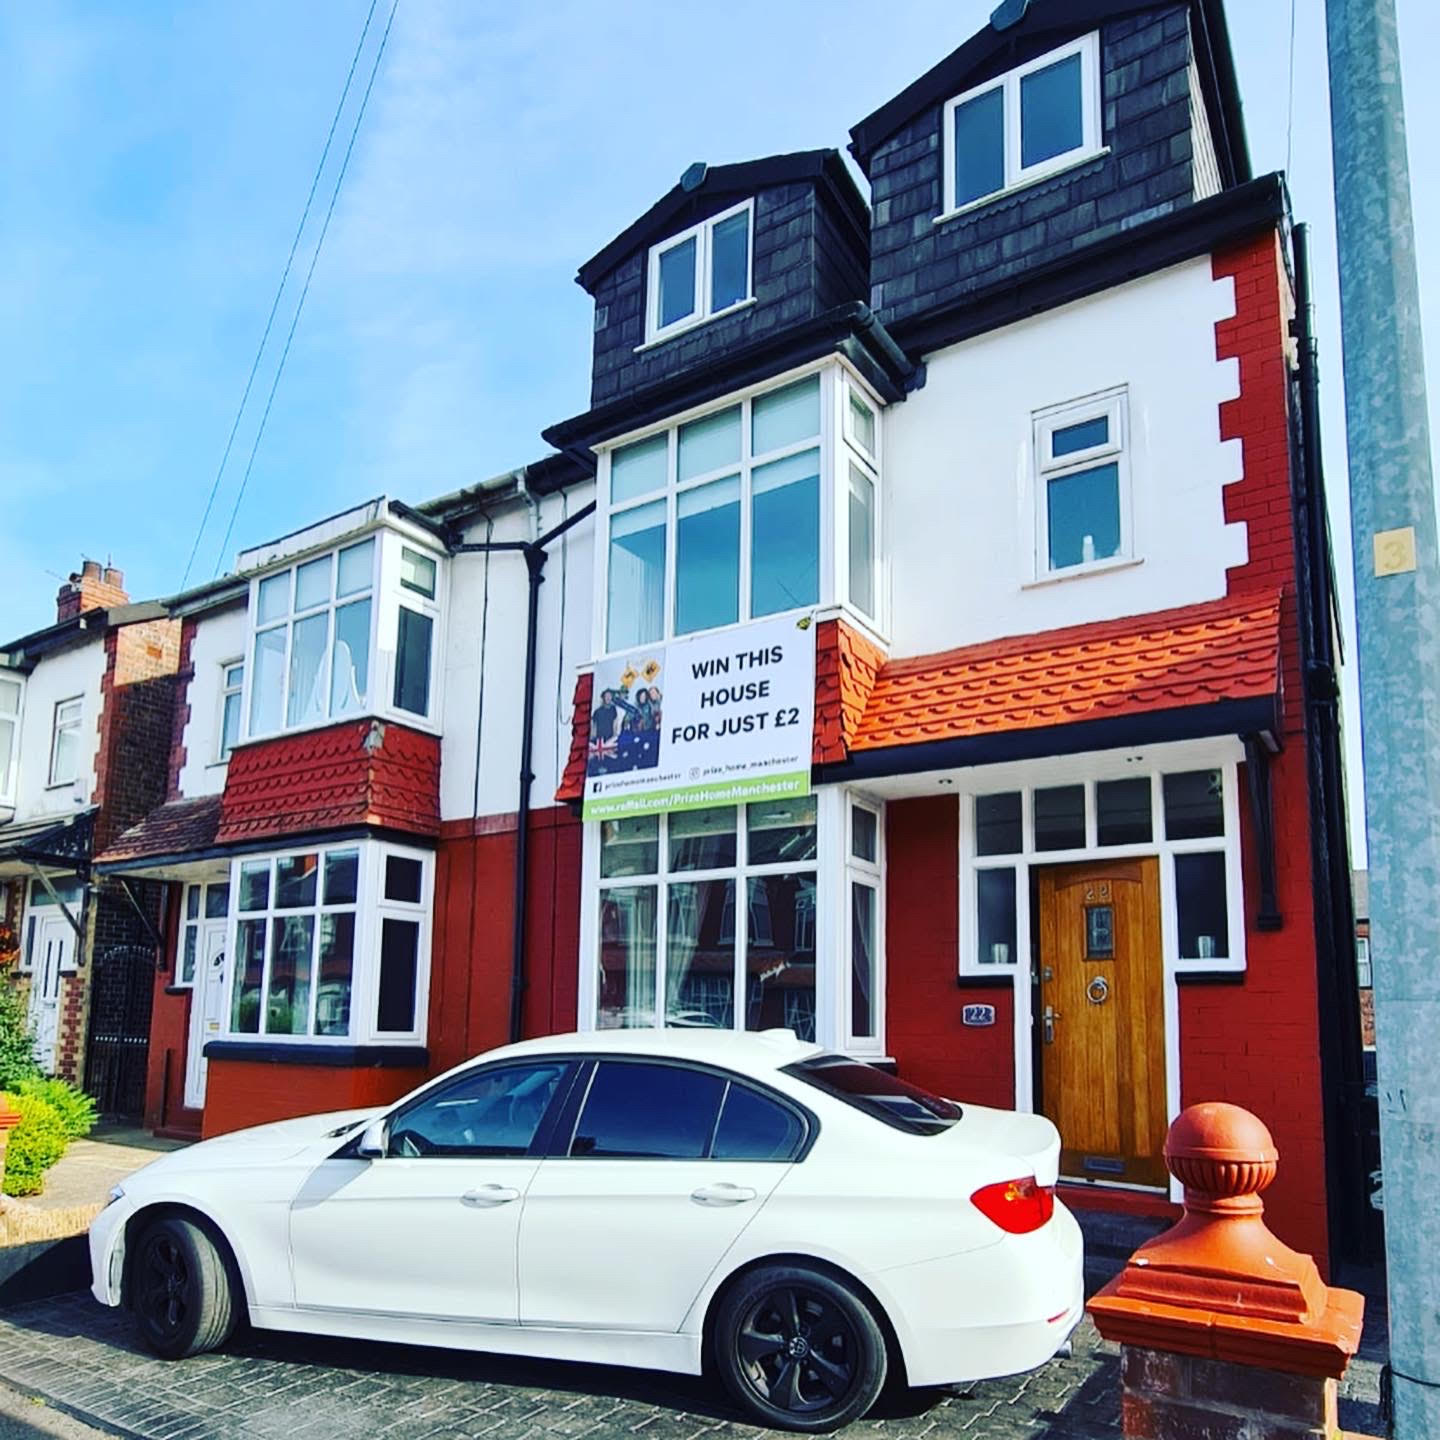 A Salford family are selling their 5-bed house and BMW for £2 – and you can buy a ticket, The Manc